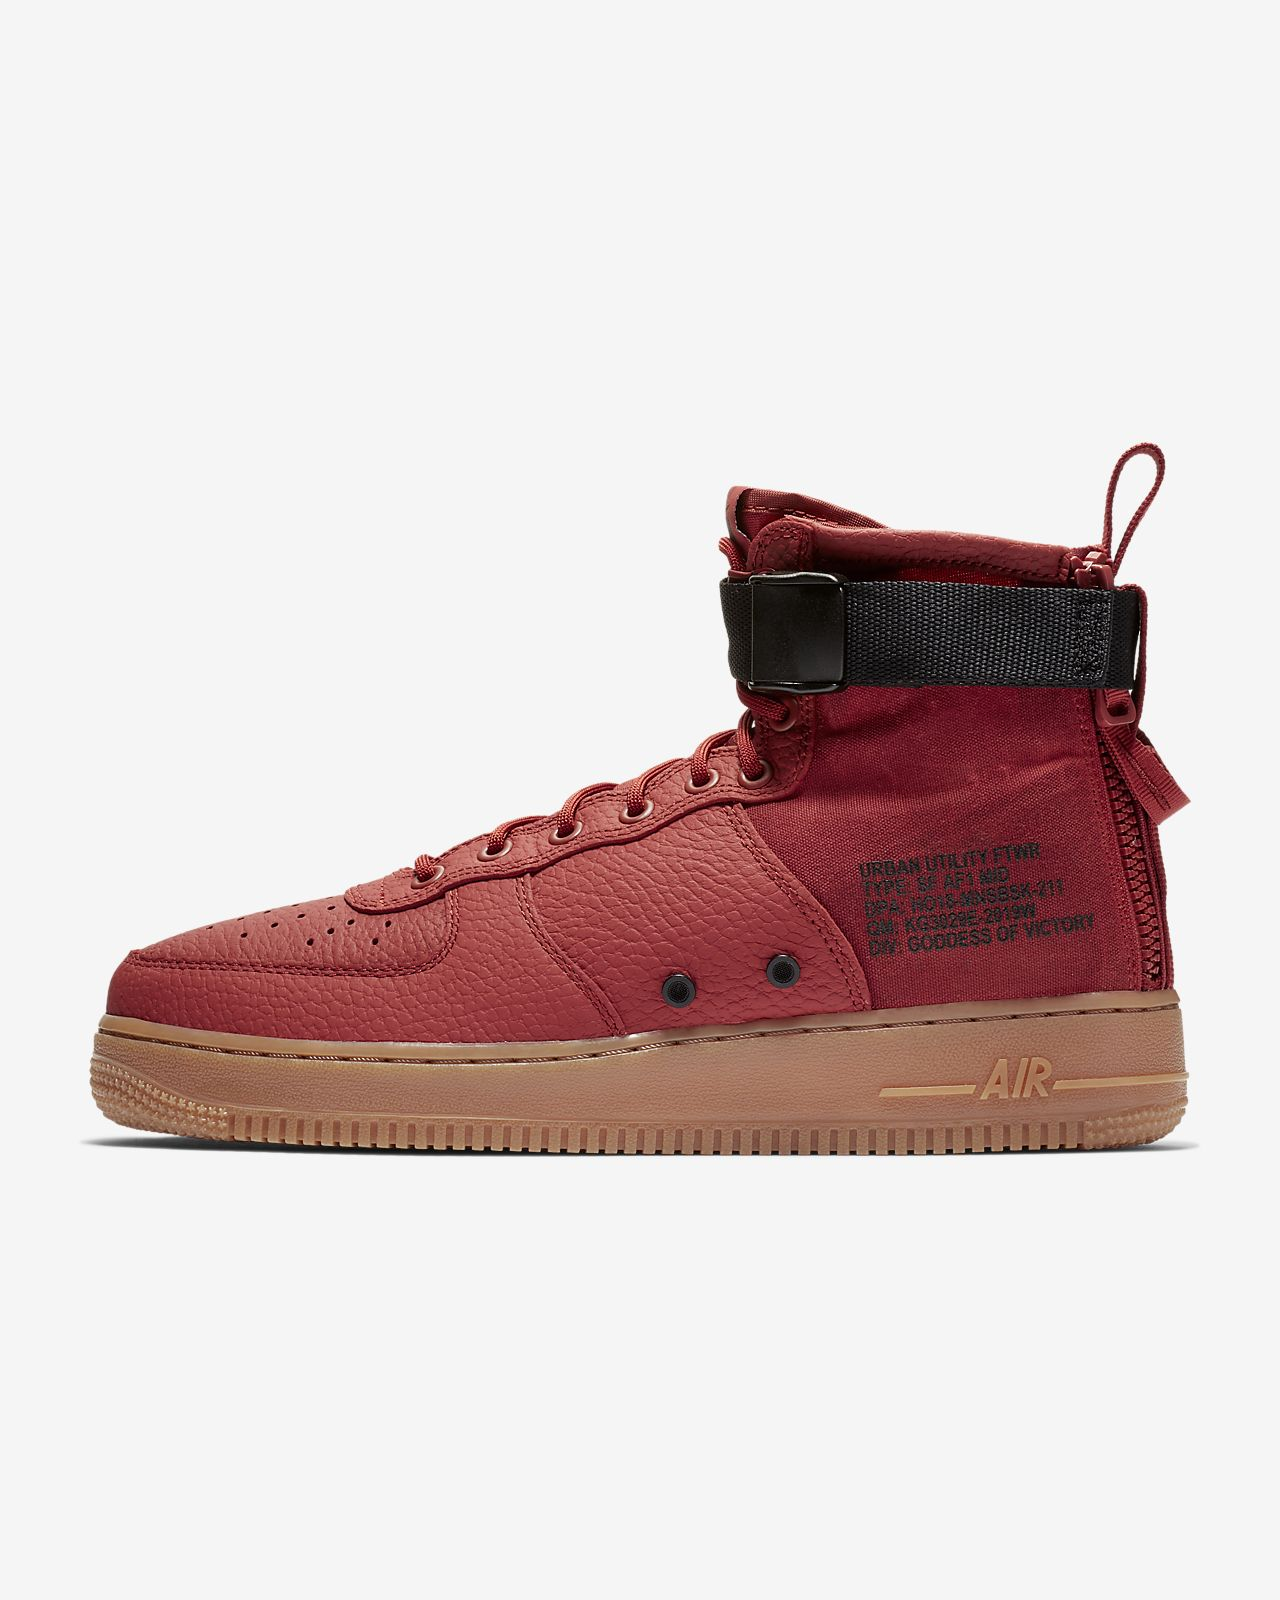 64f731eac75 Nike SF Air Force 1 Mid Men's Shoe. Nike.com